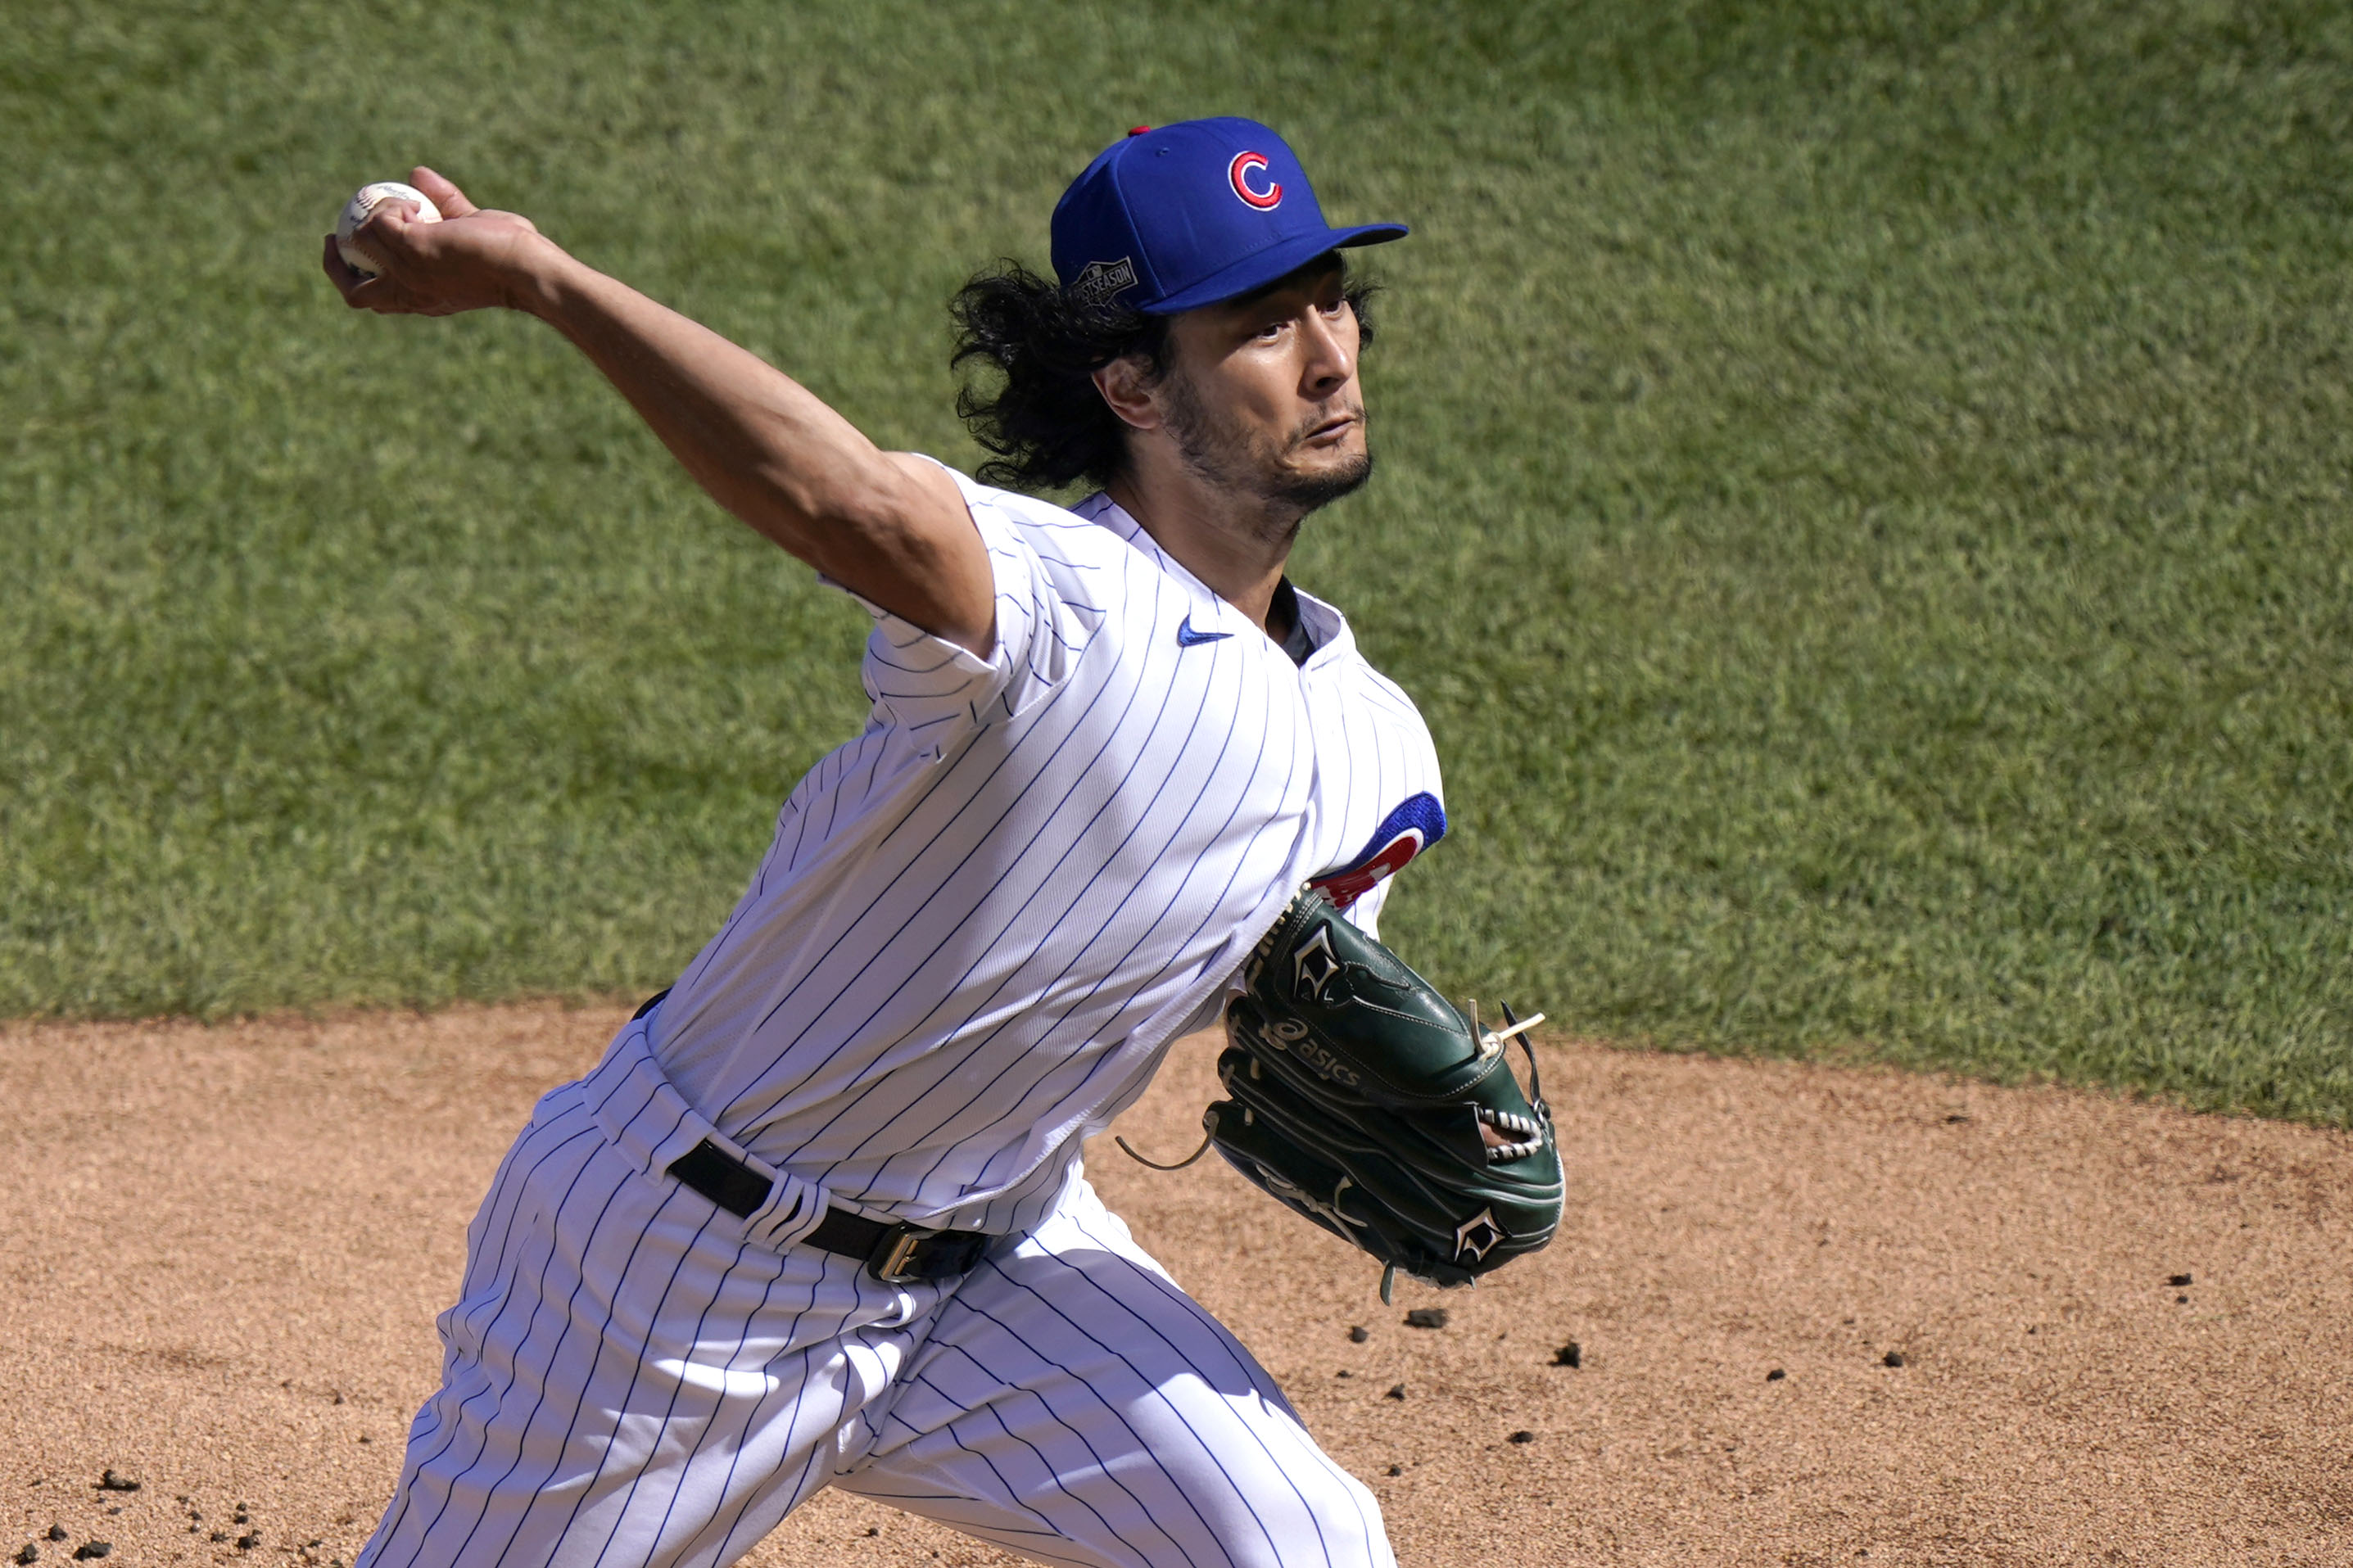 Padres acquire Yu Darvish in blockbuster deal with Cubs